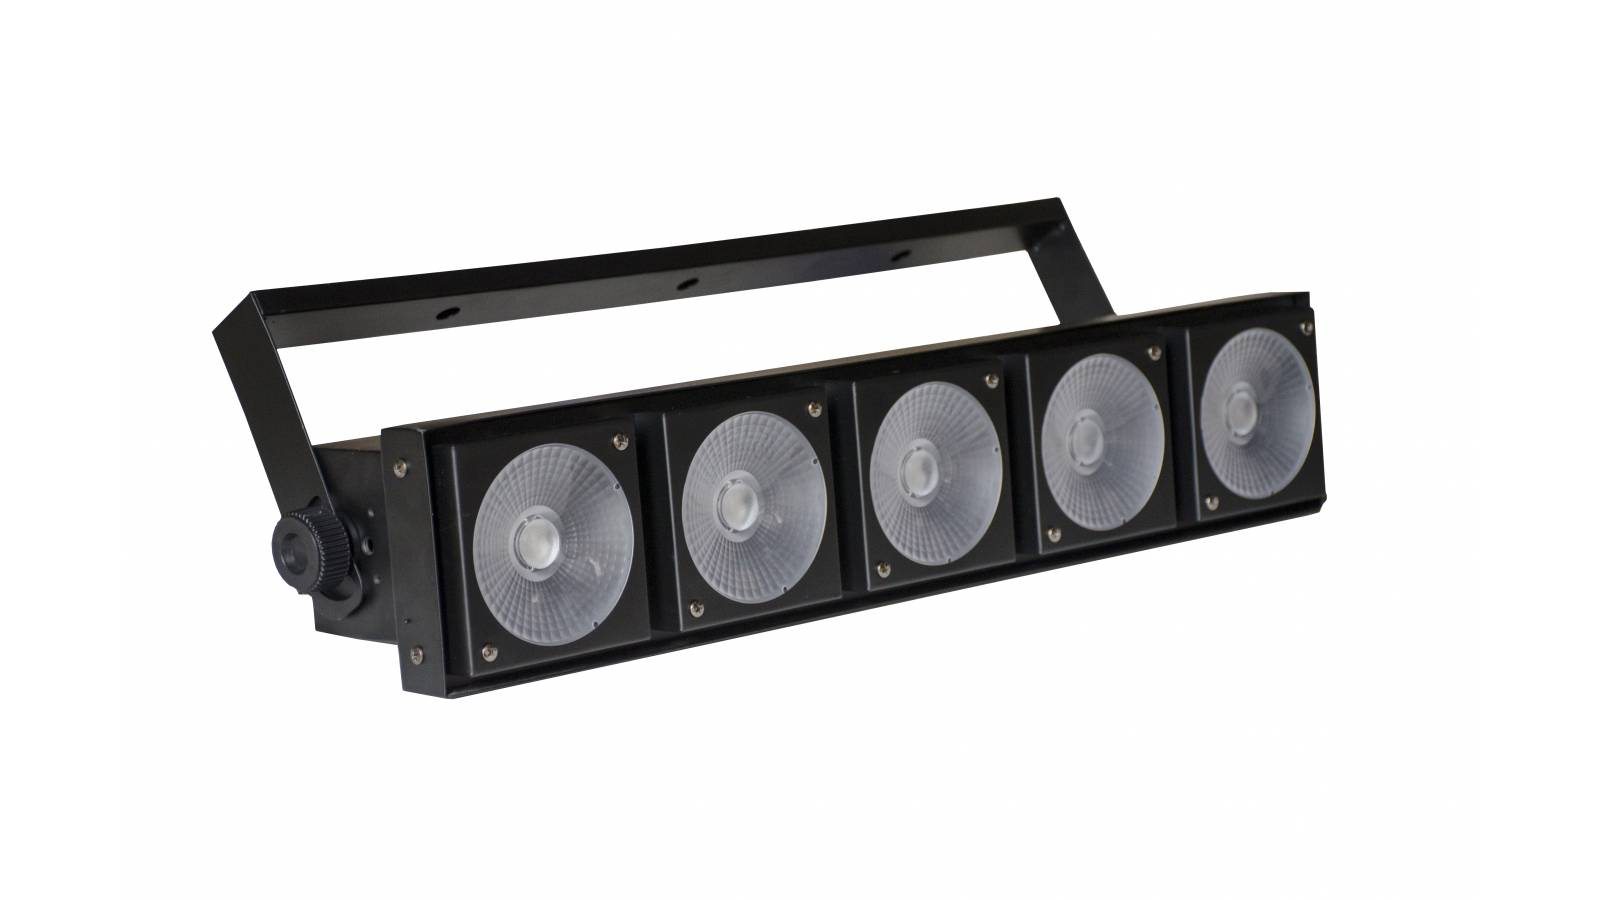 Blinder Cegador Mini Bruts LED 5 x 30W RGB